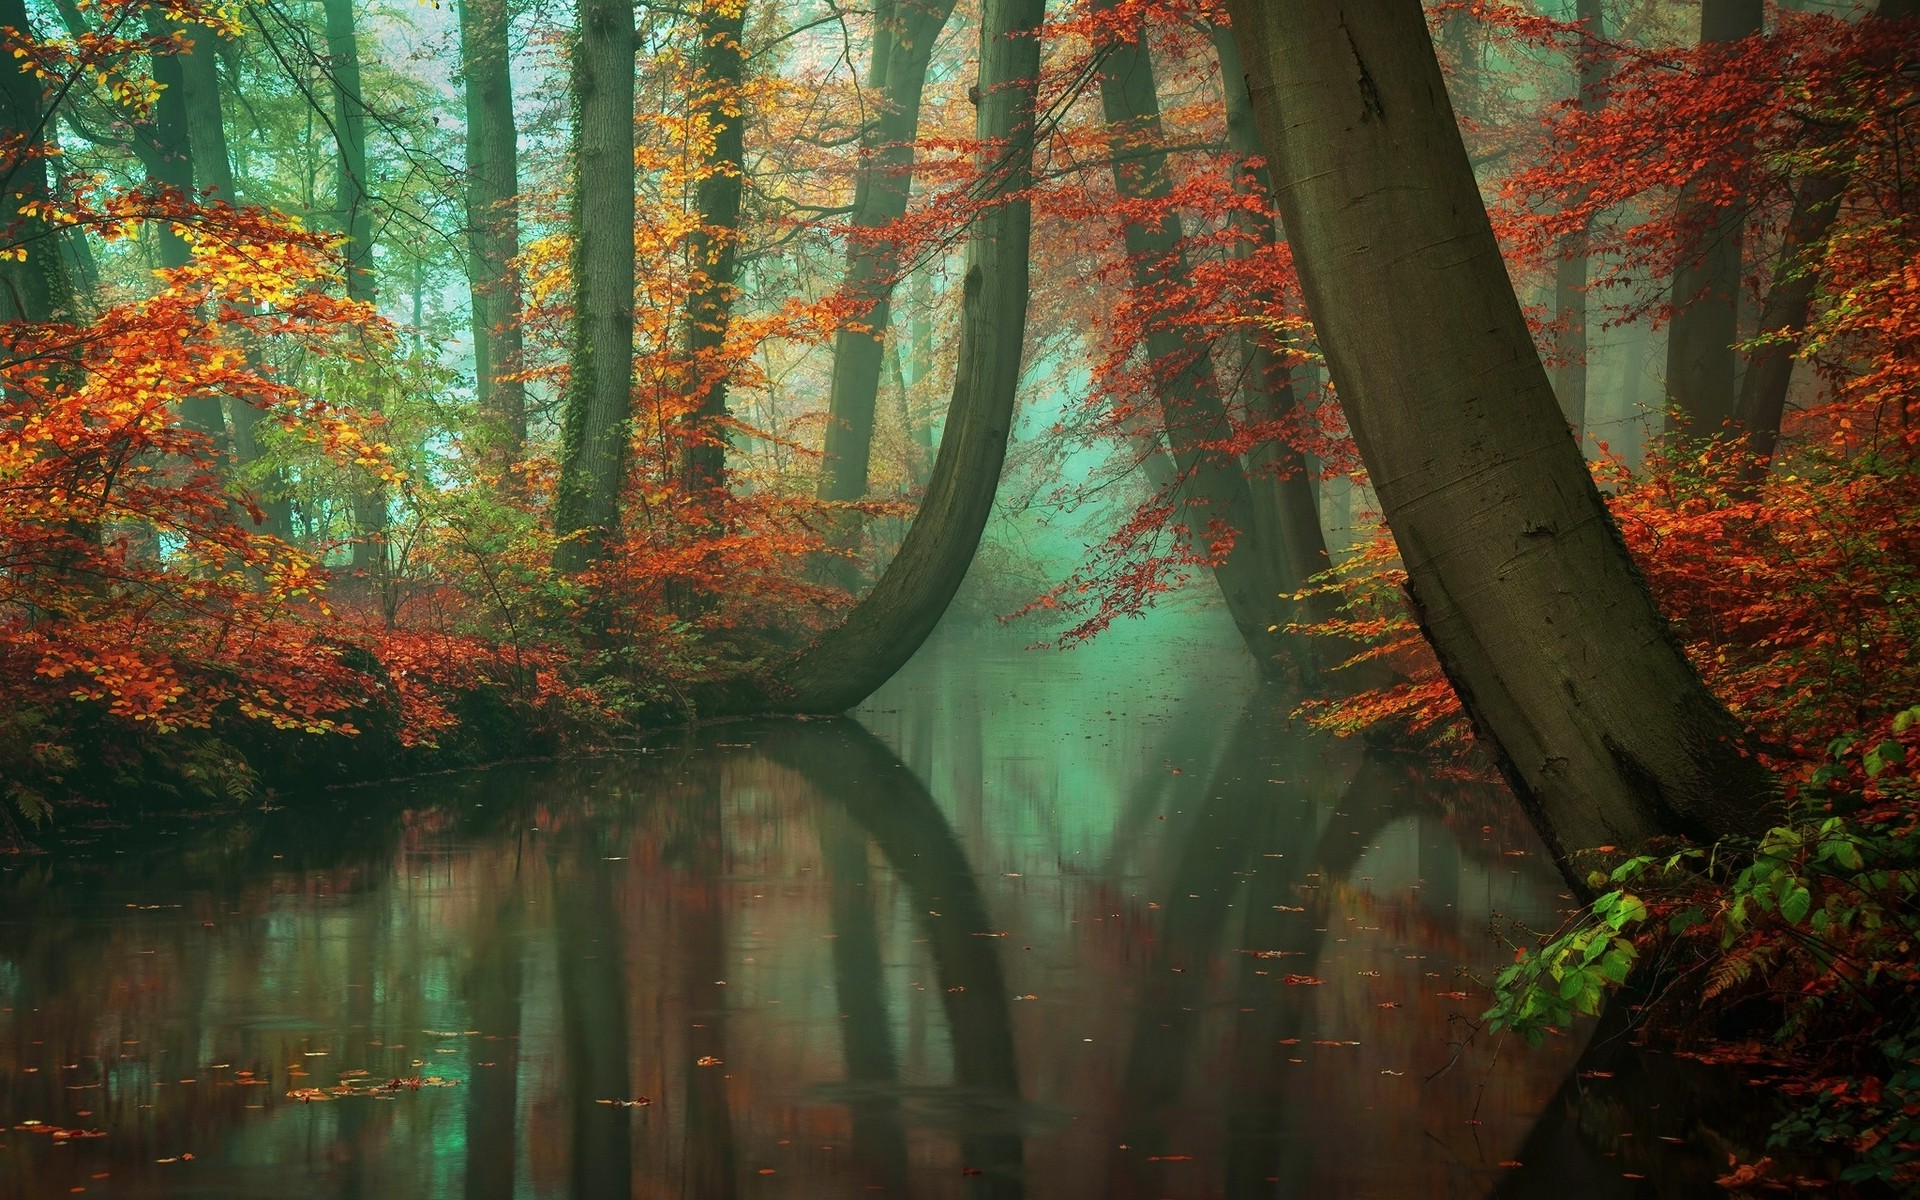 Full Screen Desktop Fall Leaves Wallpaper Nature Landscape Mist Forest Fall River Reflection